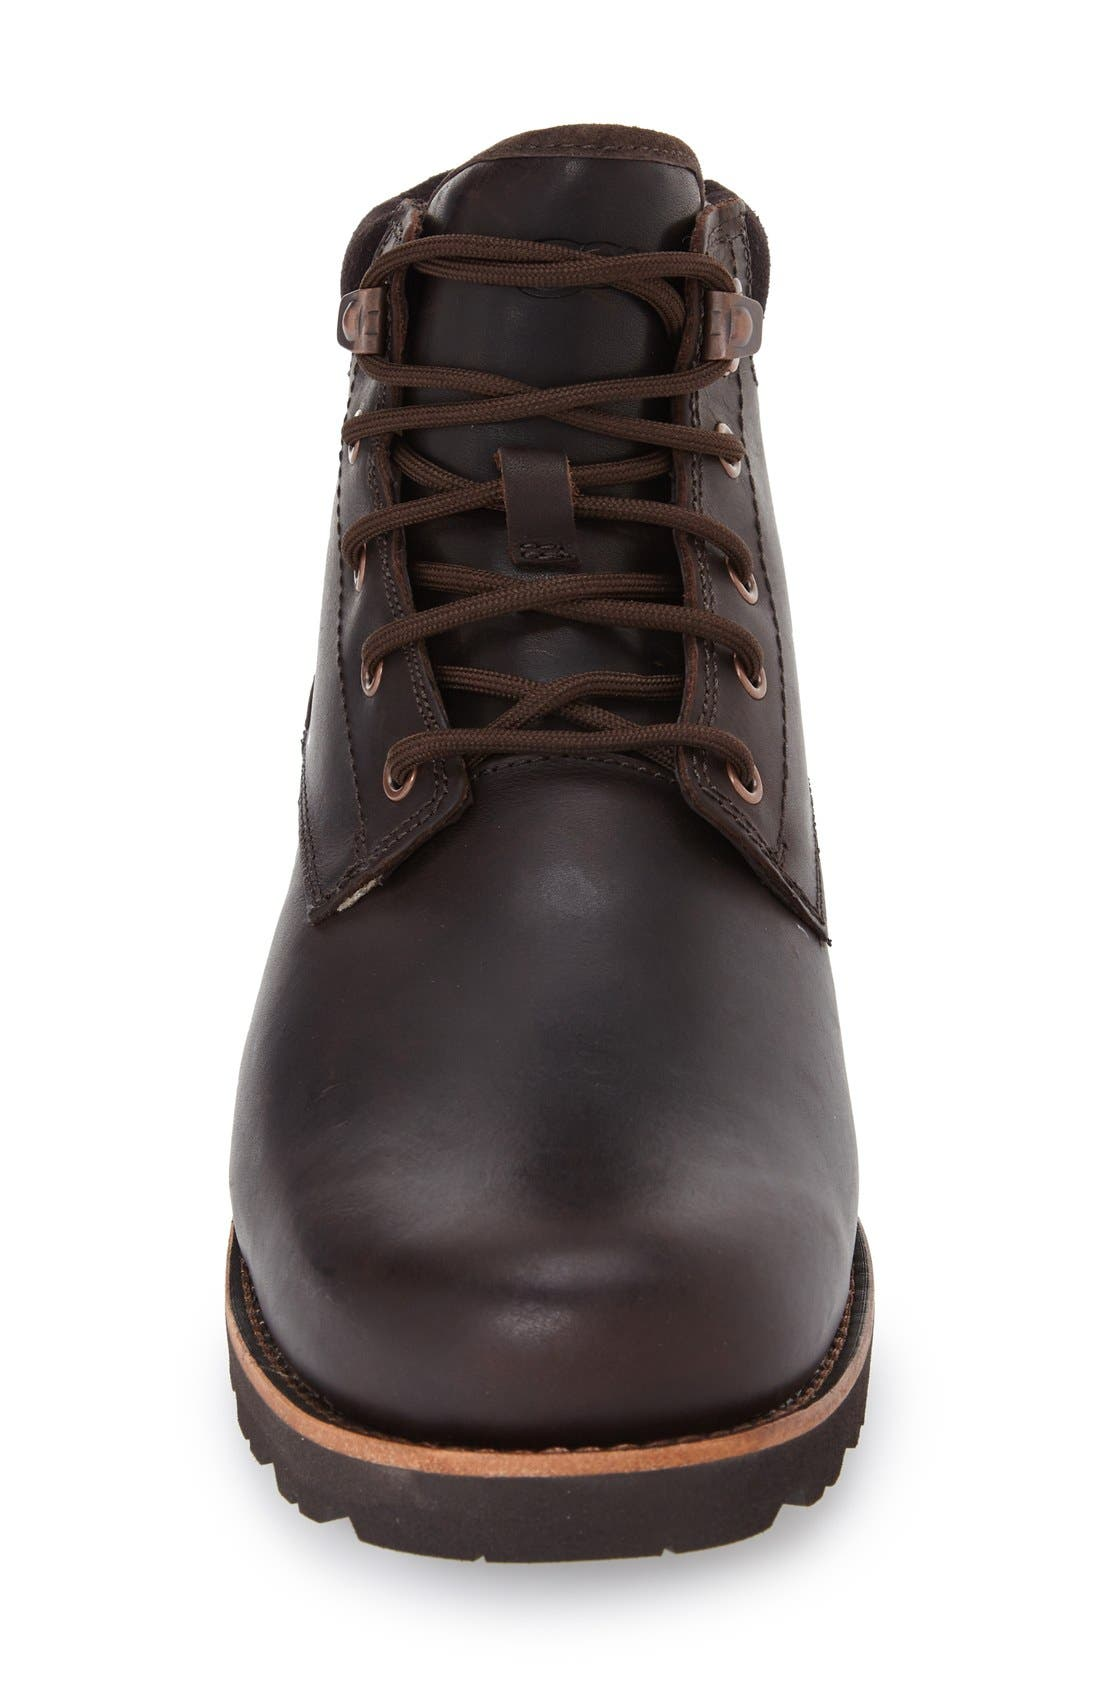 UGG<SUP>®</SUP>, Seton Waterproof Chukka Boot, Alternate thumbnail 3, color, STOUT